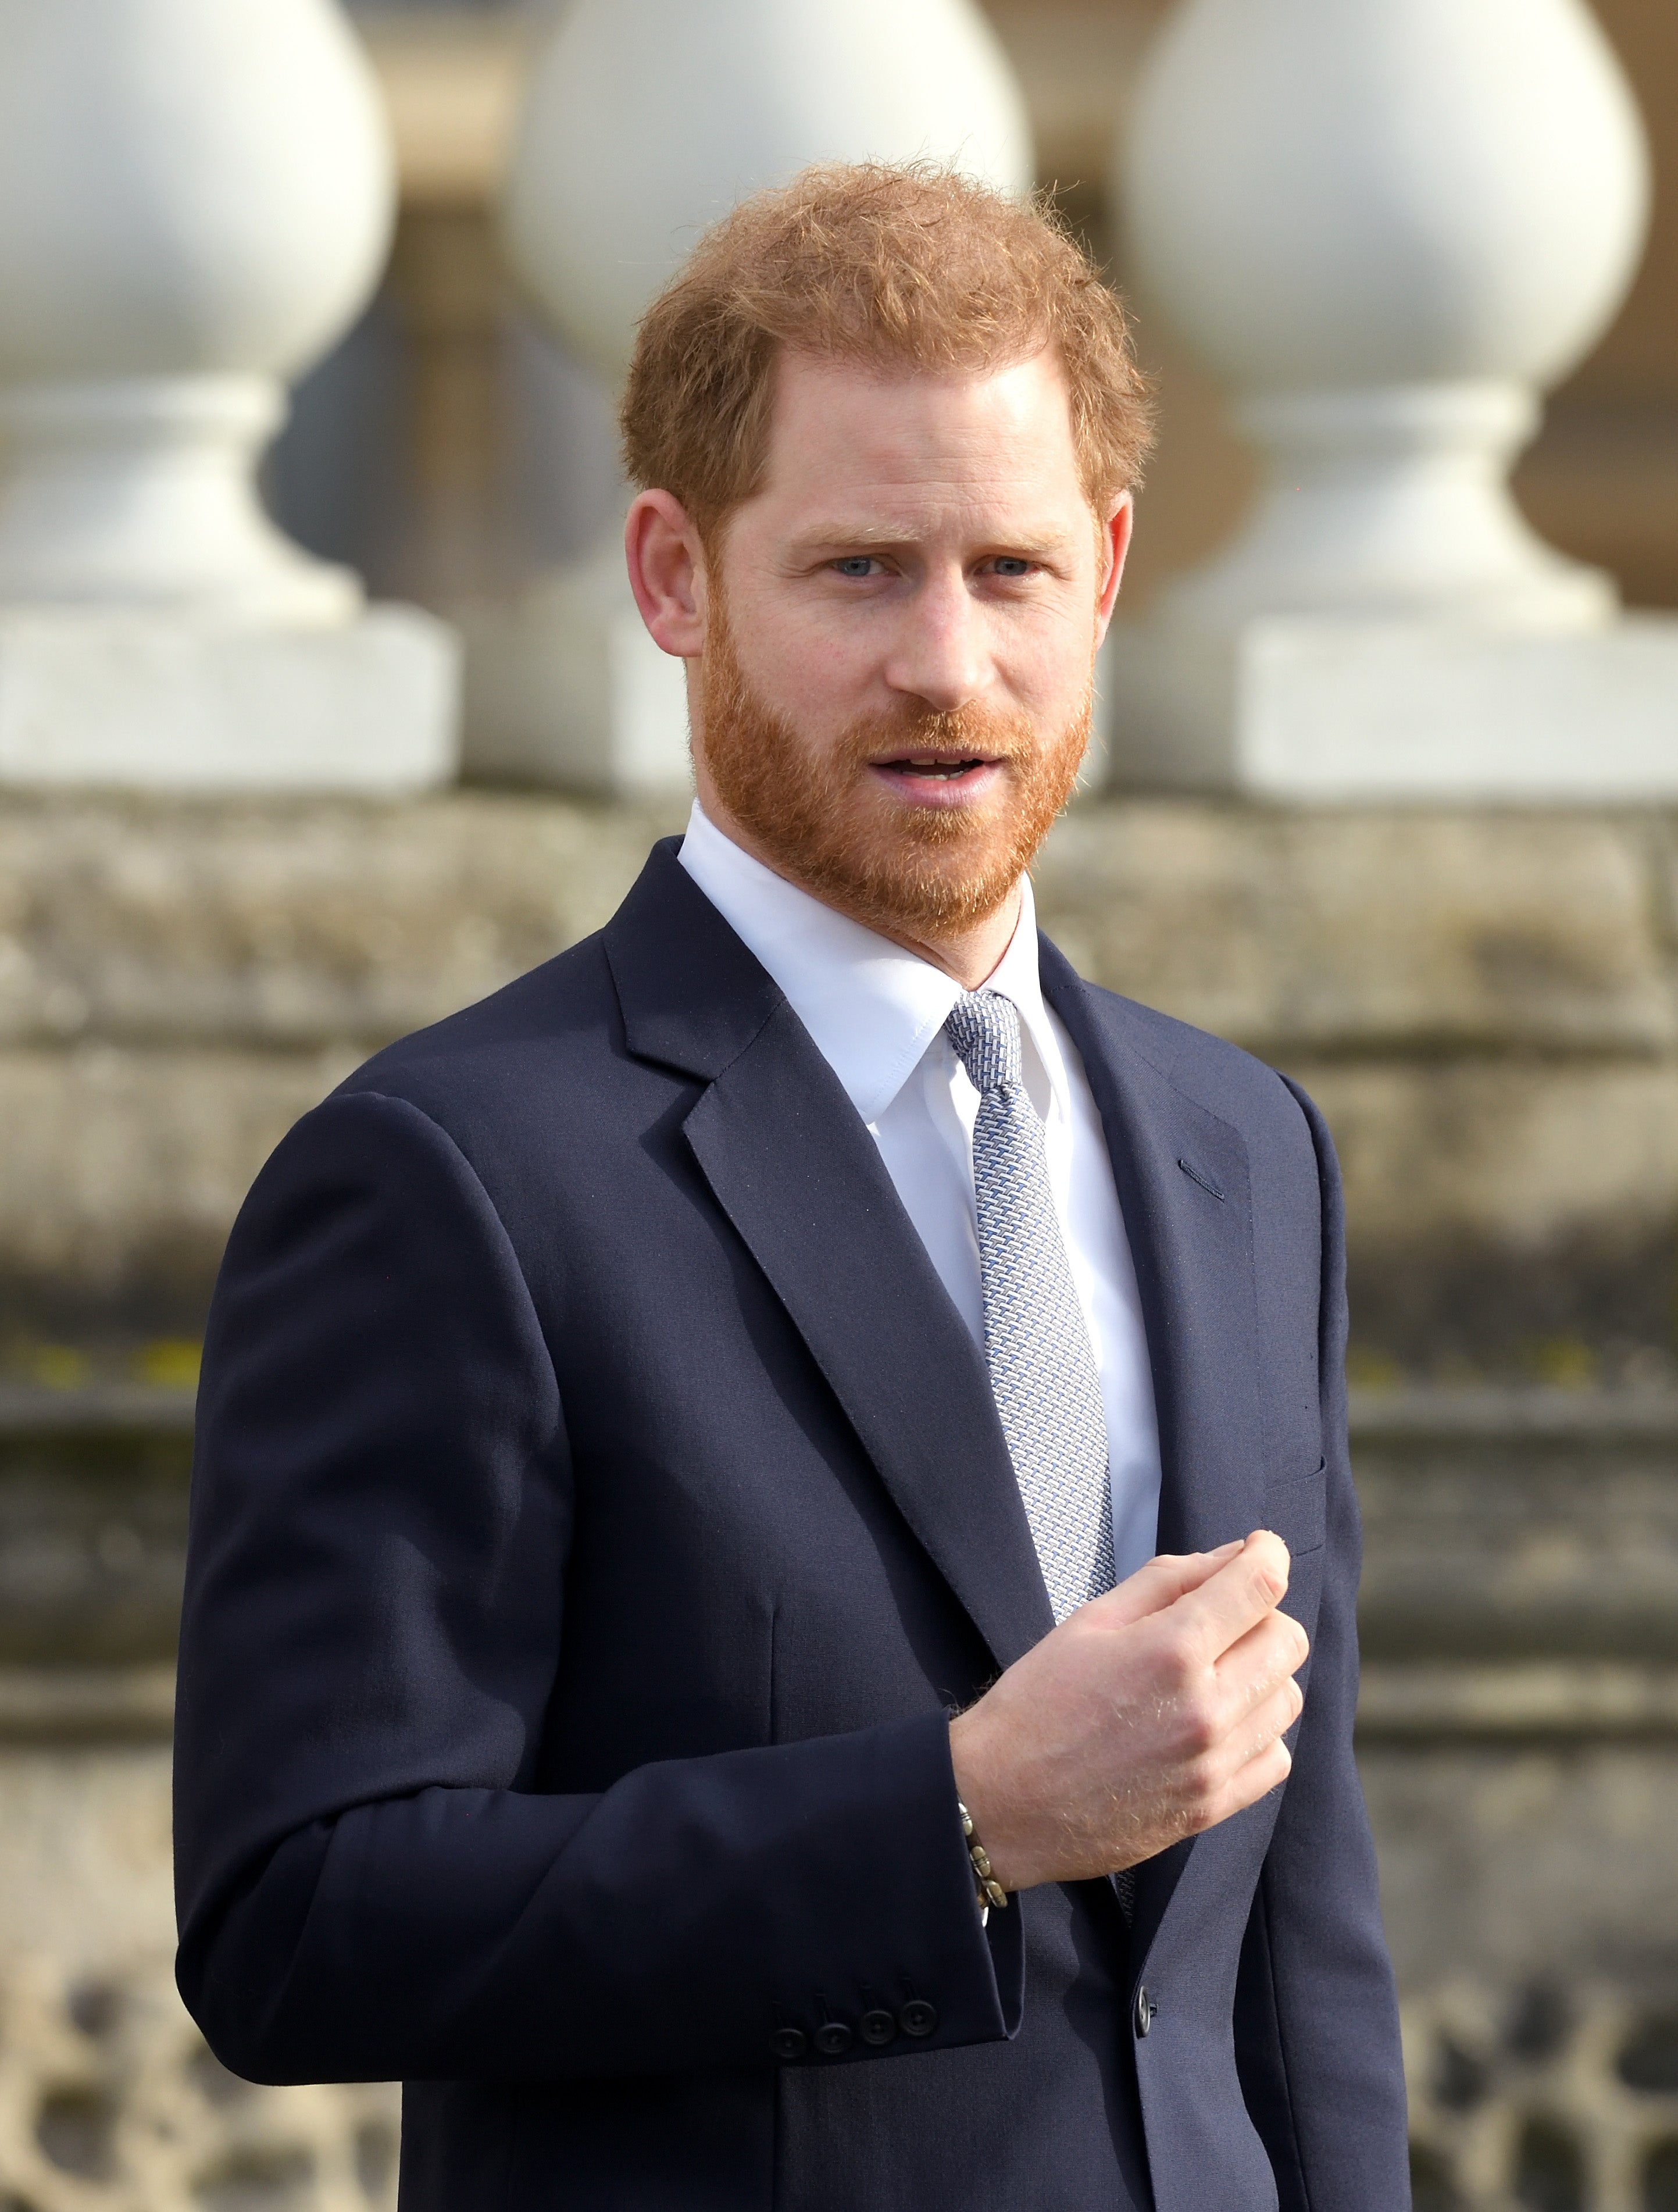 Prince Harry Trying to 'Protect' Meghan Markle by Taking Responsibility for Royal Exit